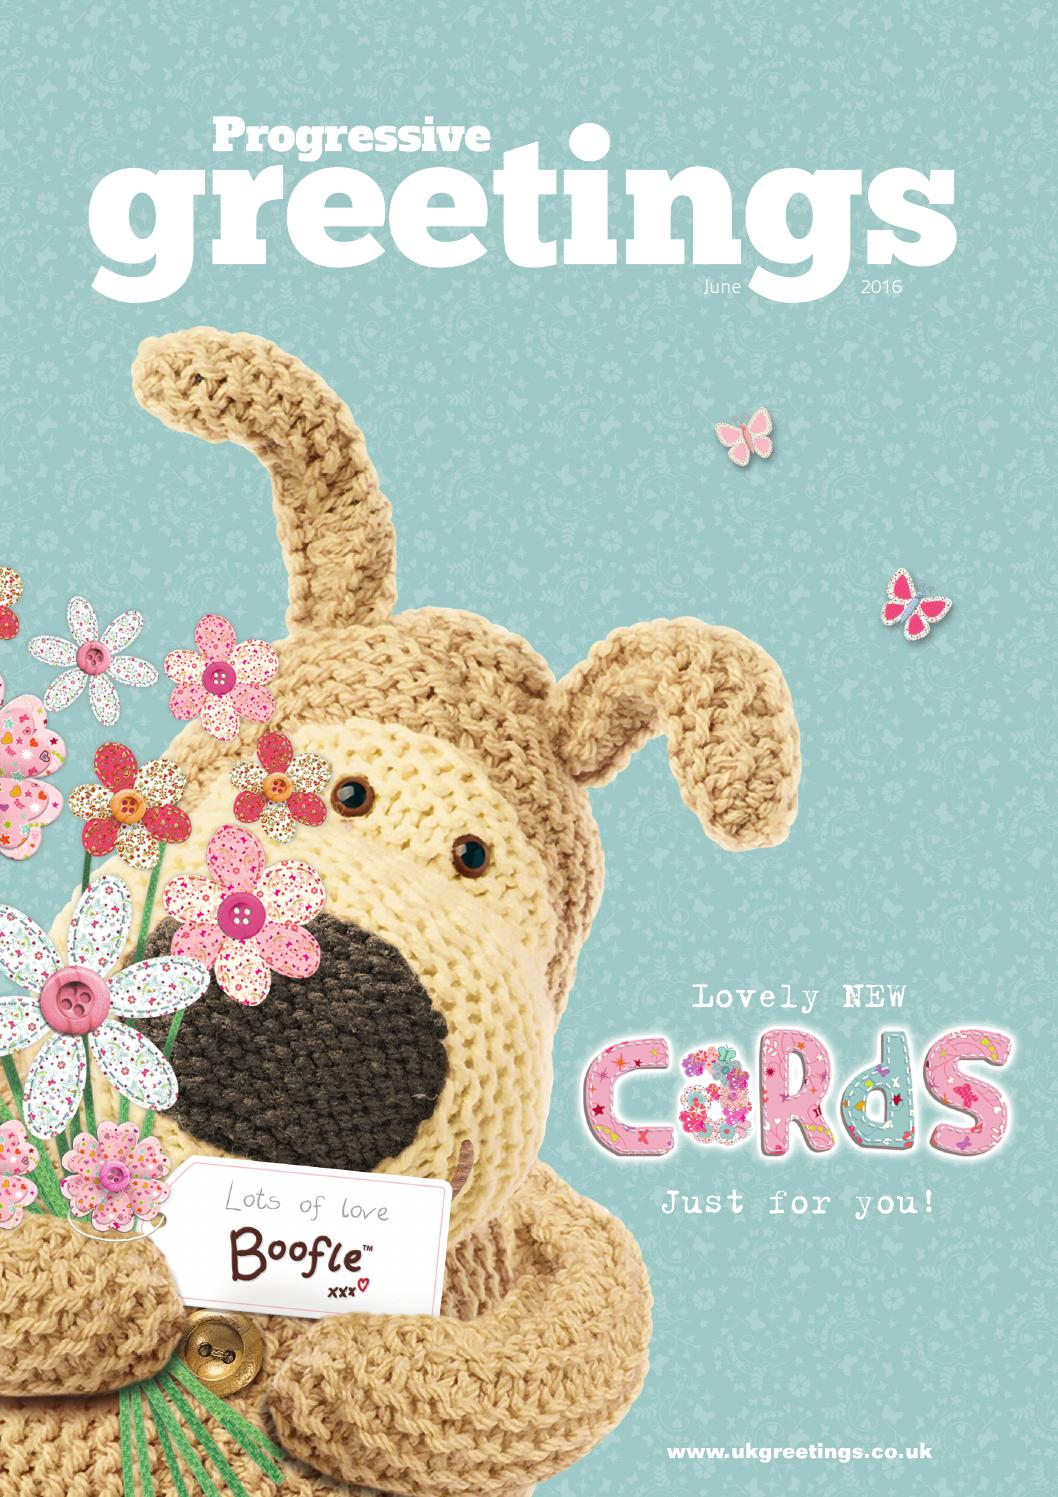 A 3D PERSONALISED BOOFLE SORRY YOUR LEAVING NEW JOB CARD